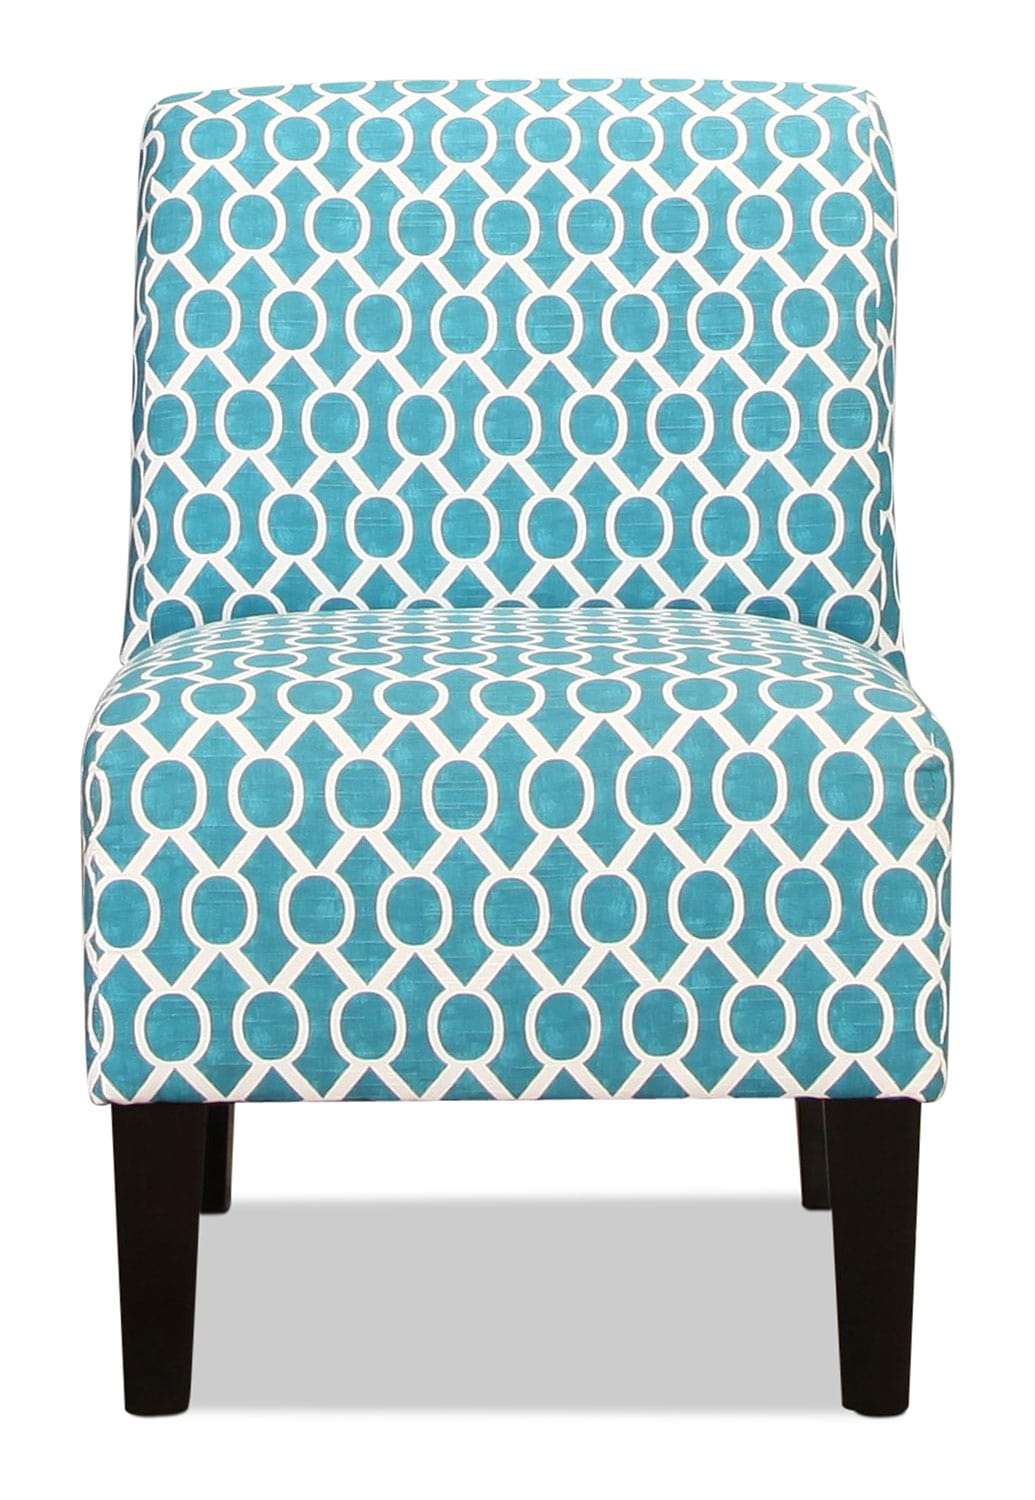 Living Room Furniture - Jaffray Accent Chair - Lattice